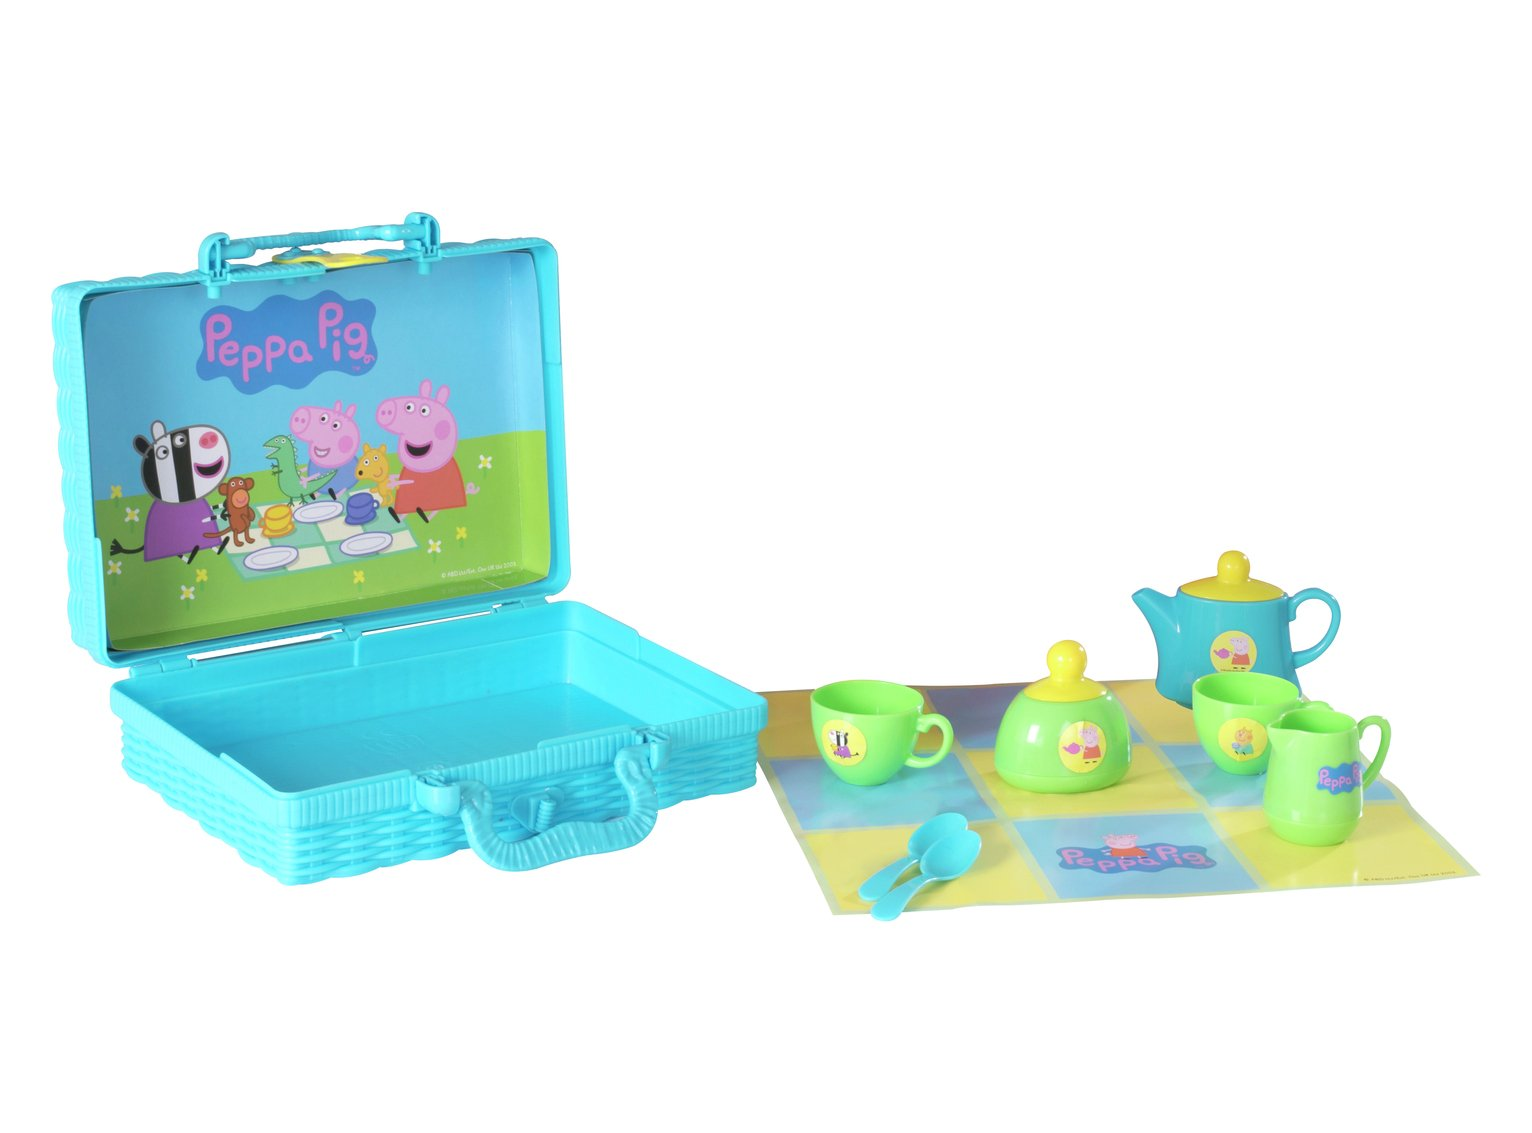 Peppa Pig Picnic Set from Peppa Pig